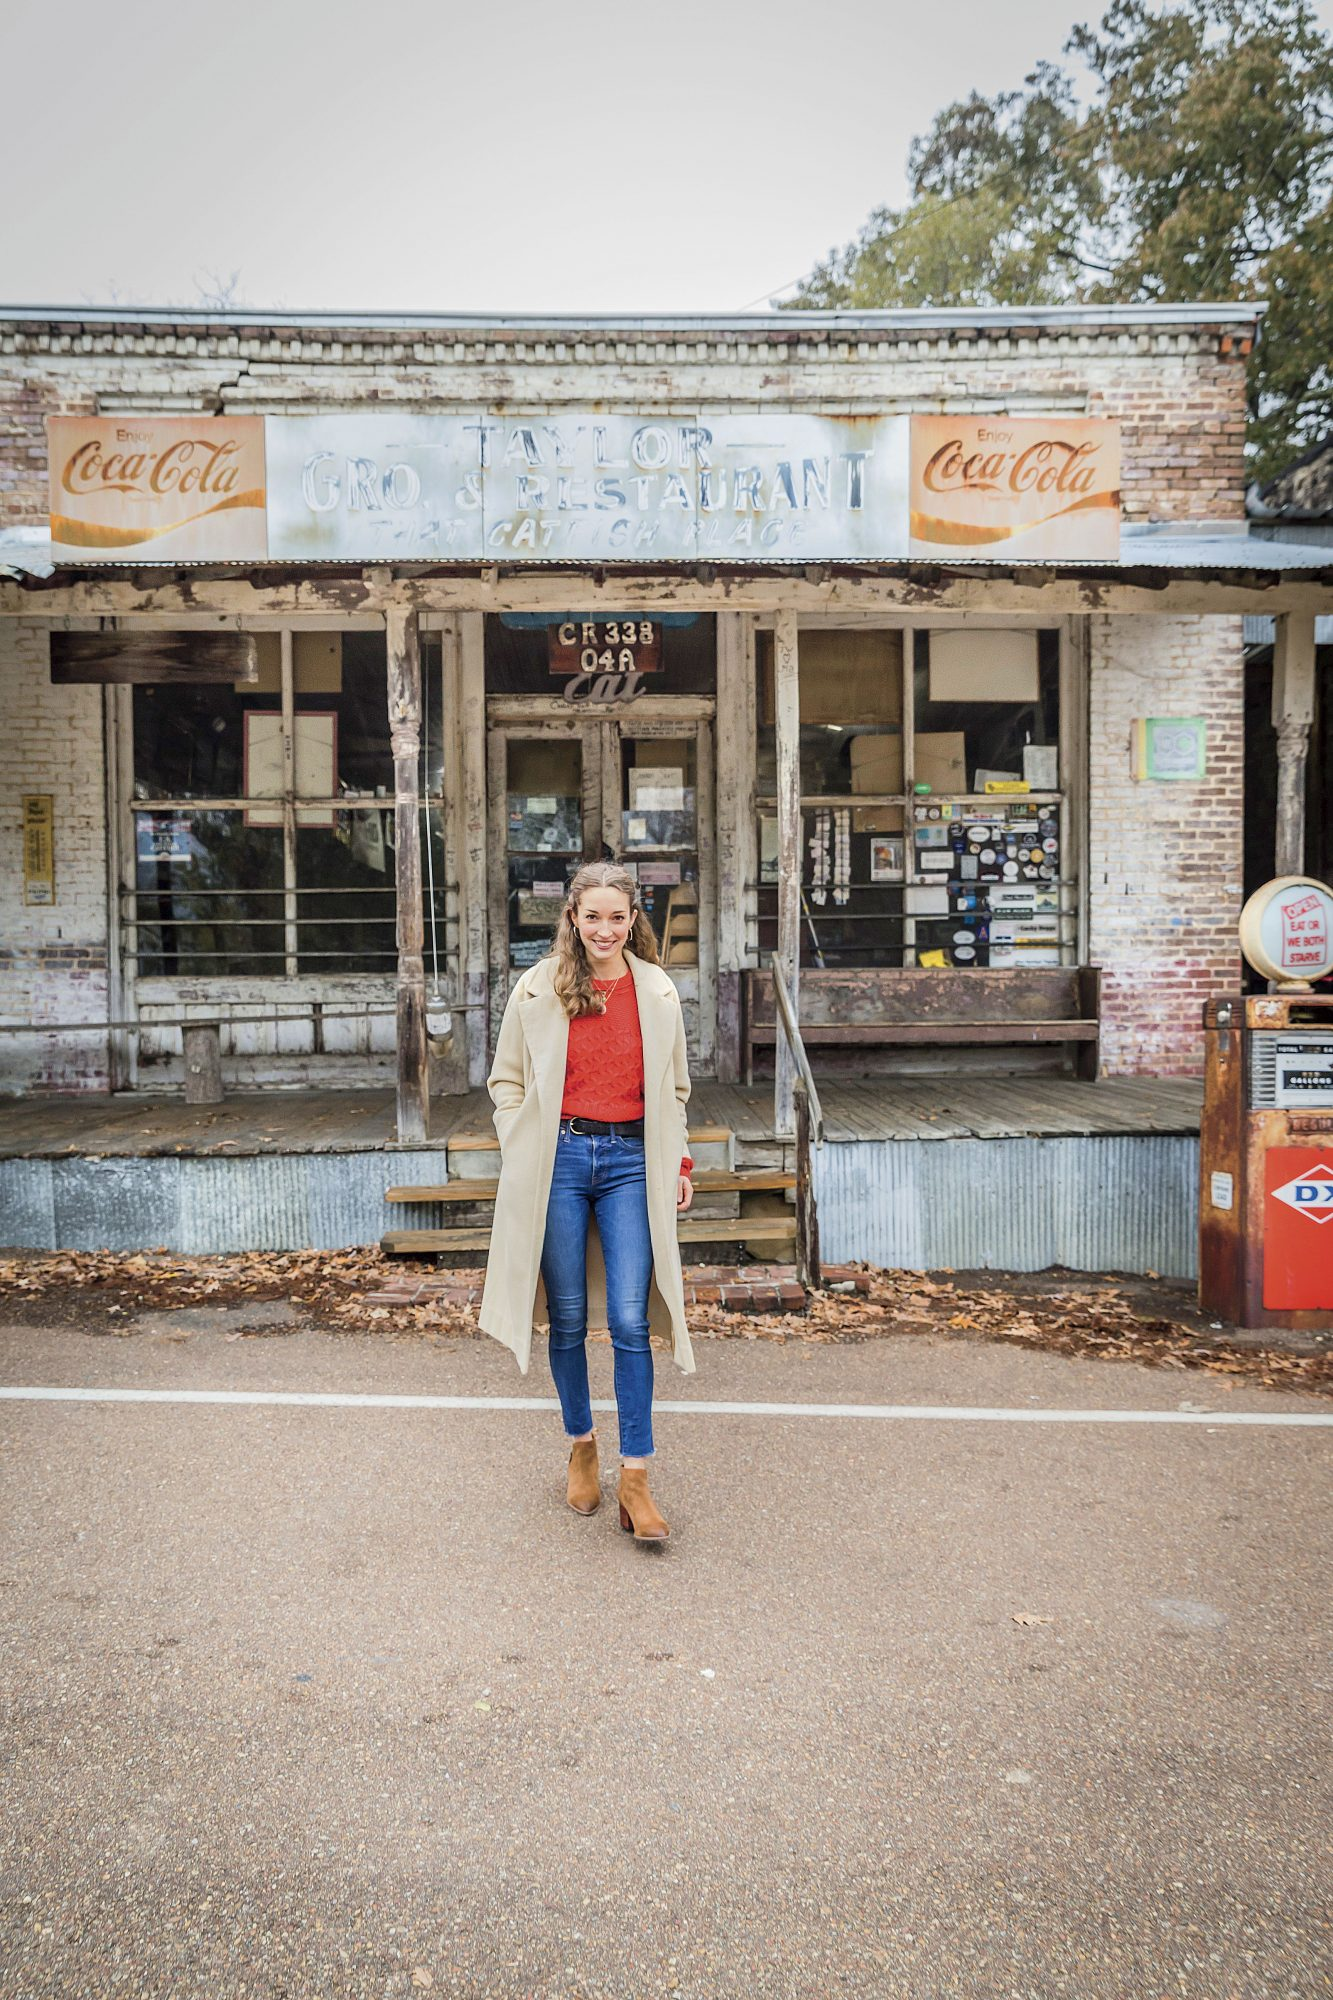 Nicole Rottler Harlow at Taylor Grocery in Mississippi